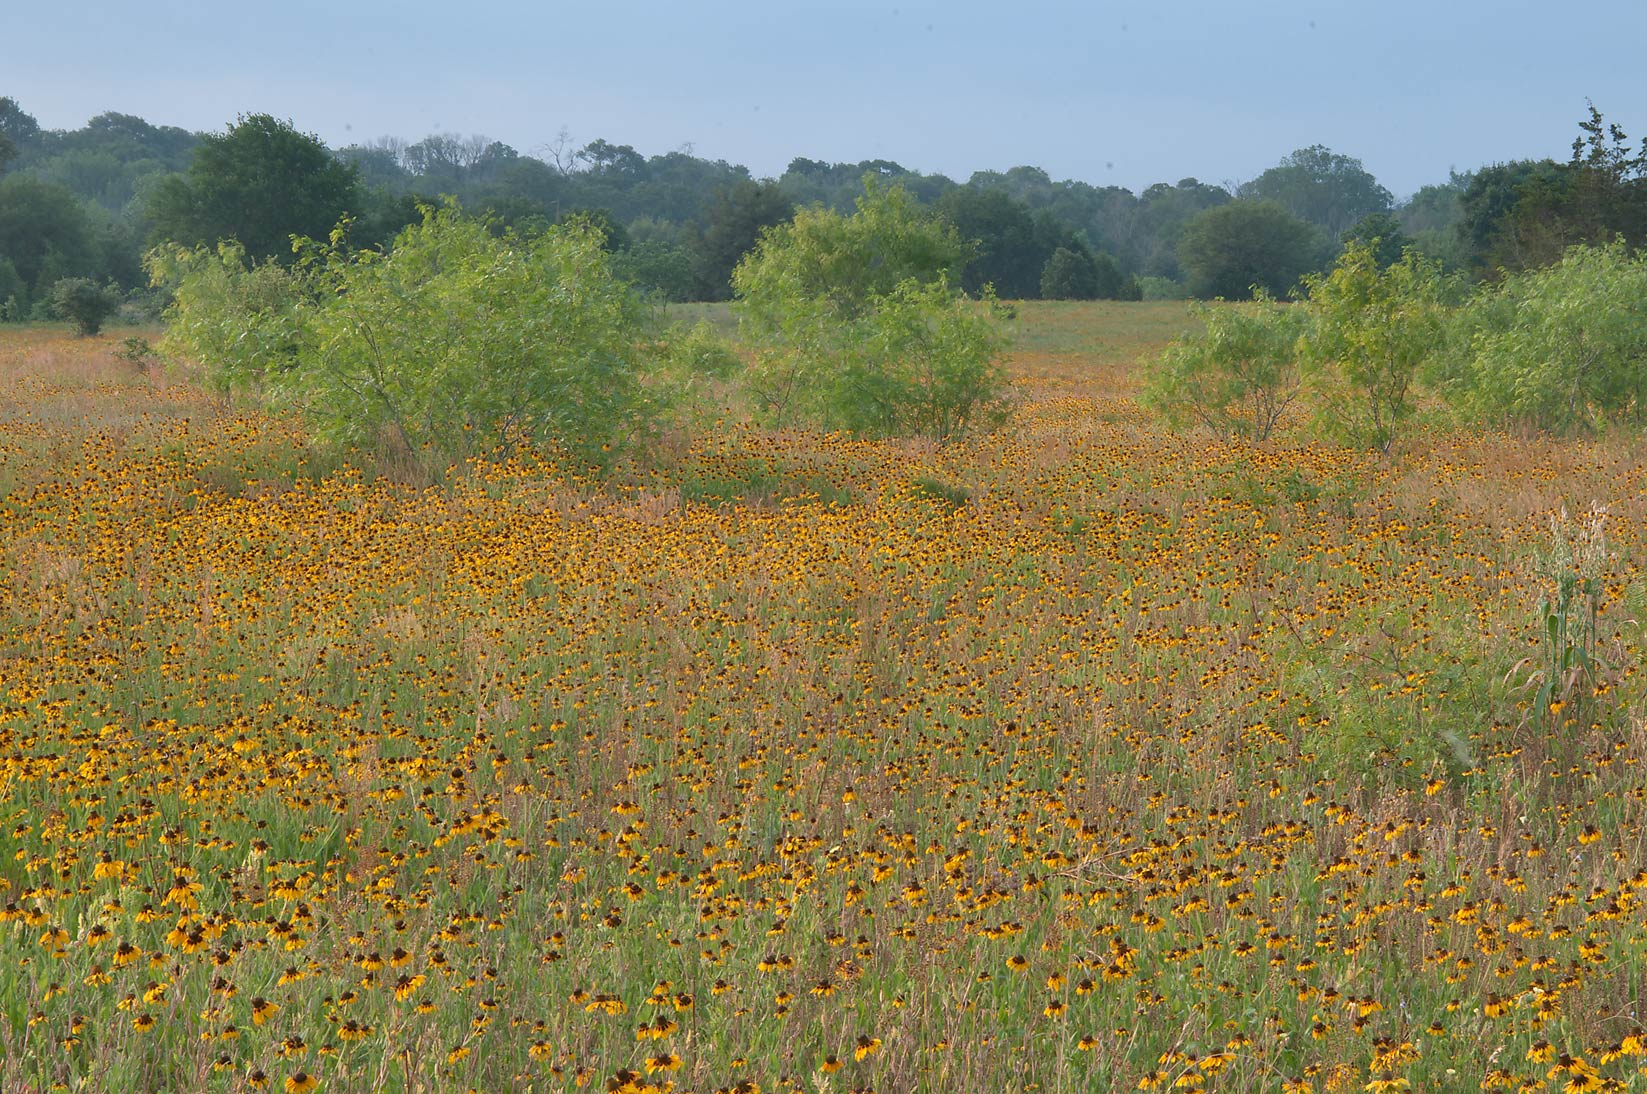 Black Eyed Susan and mesquite trees near Rd. FM 60 near Lake Somerville. Texas